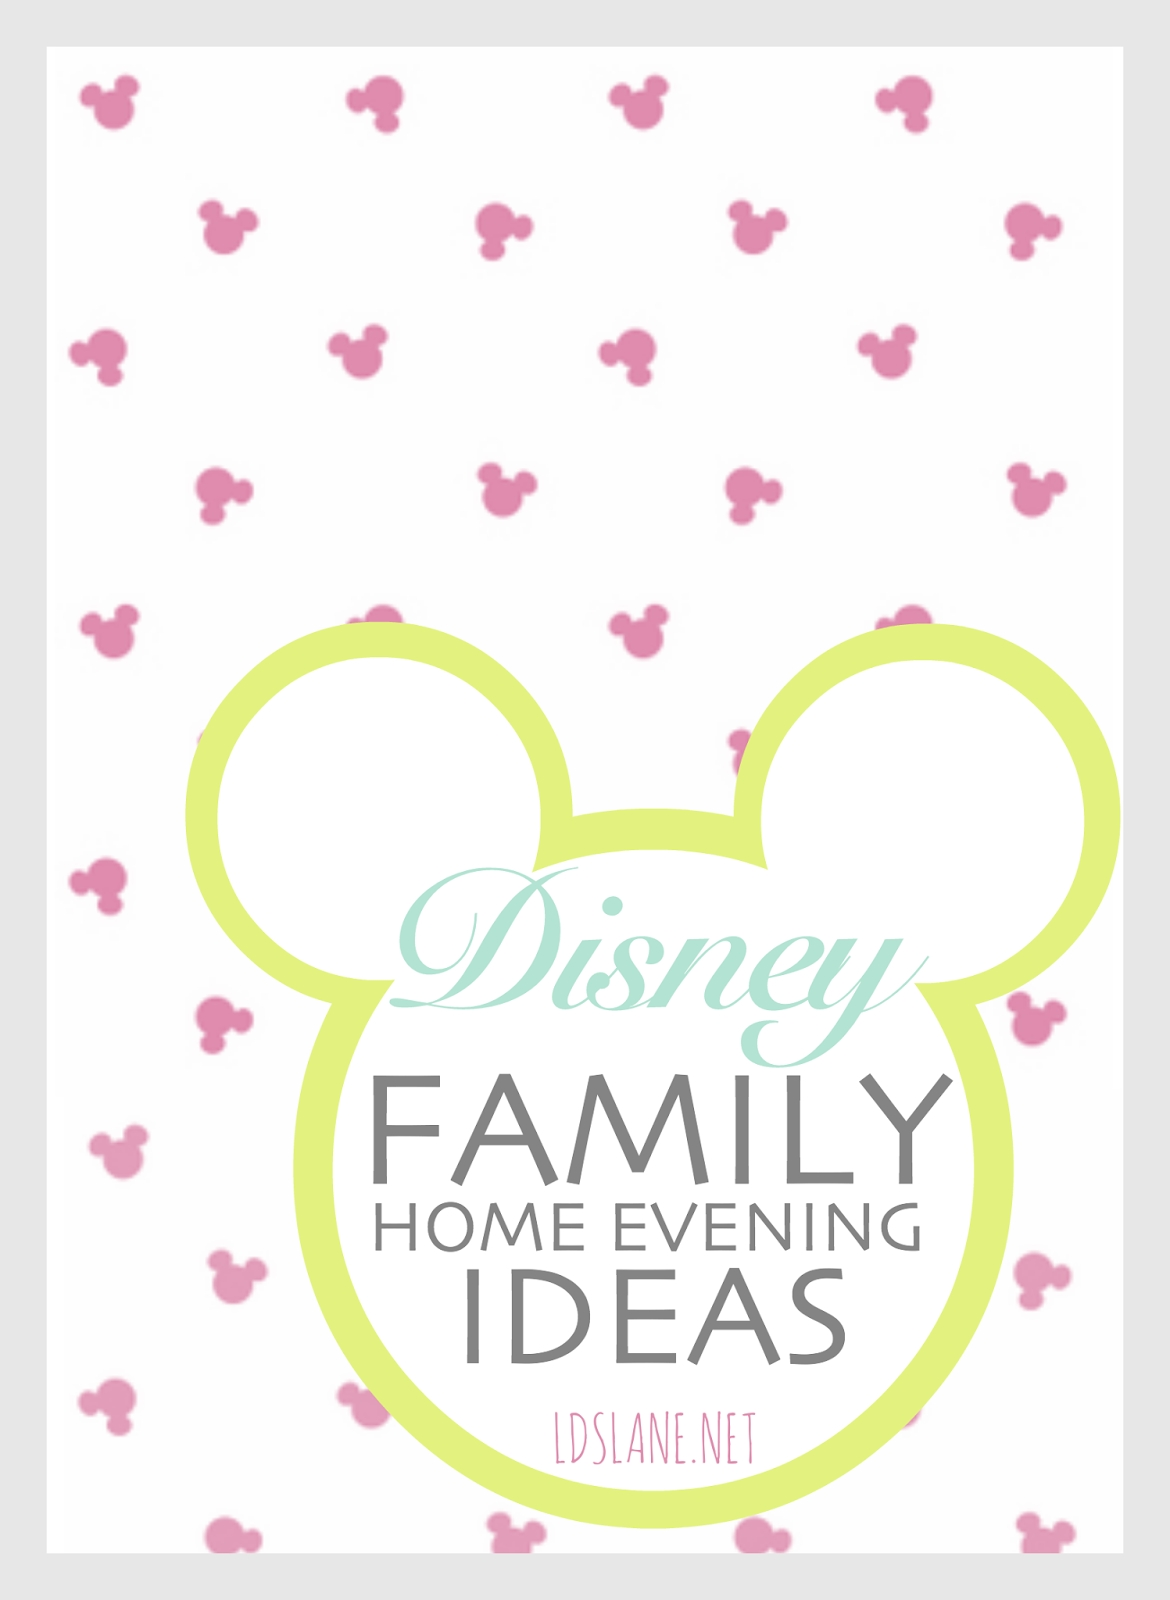 beautiful family home evening ideas for toddlers - home designs